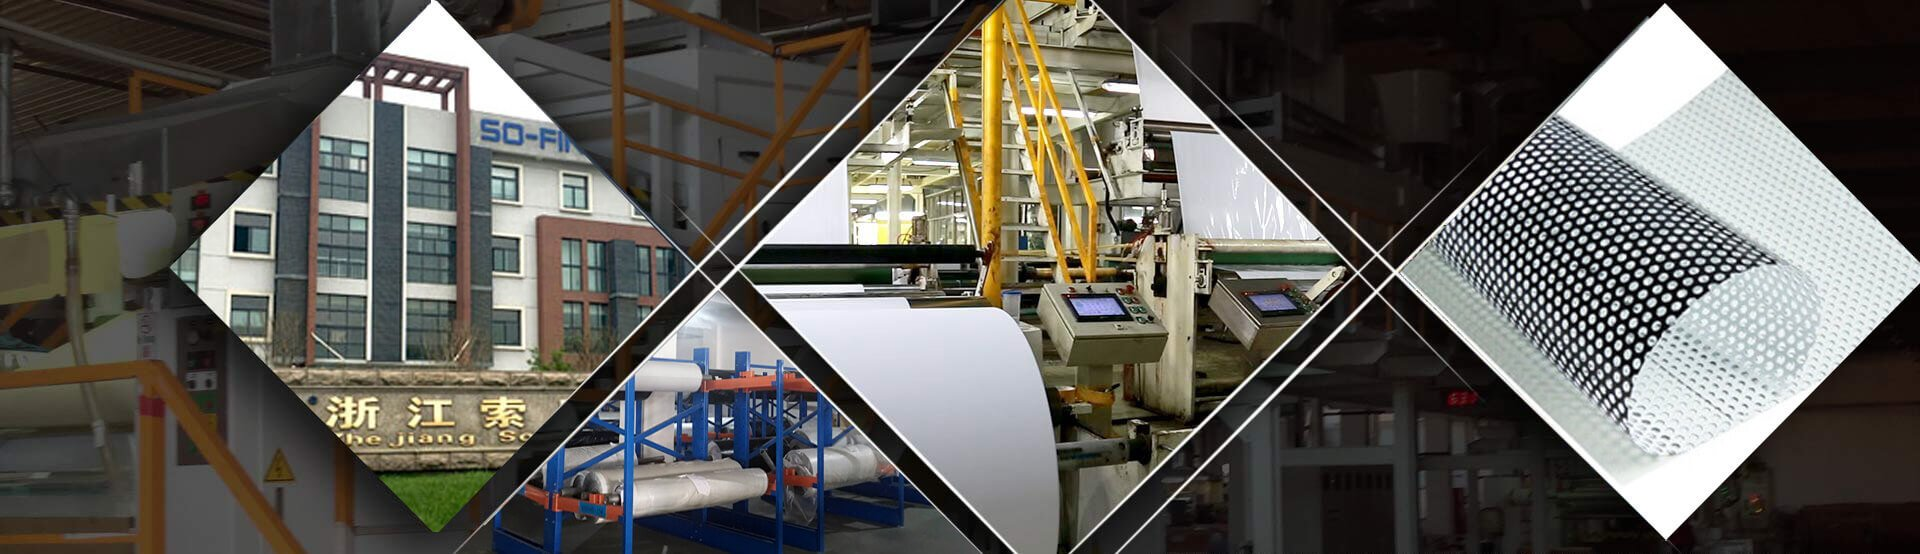 adhesive vinyl supplier